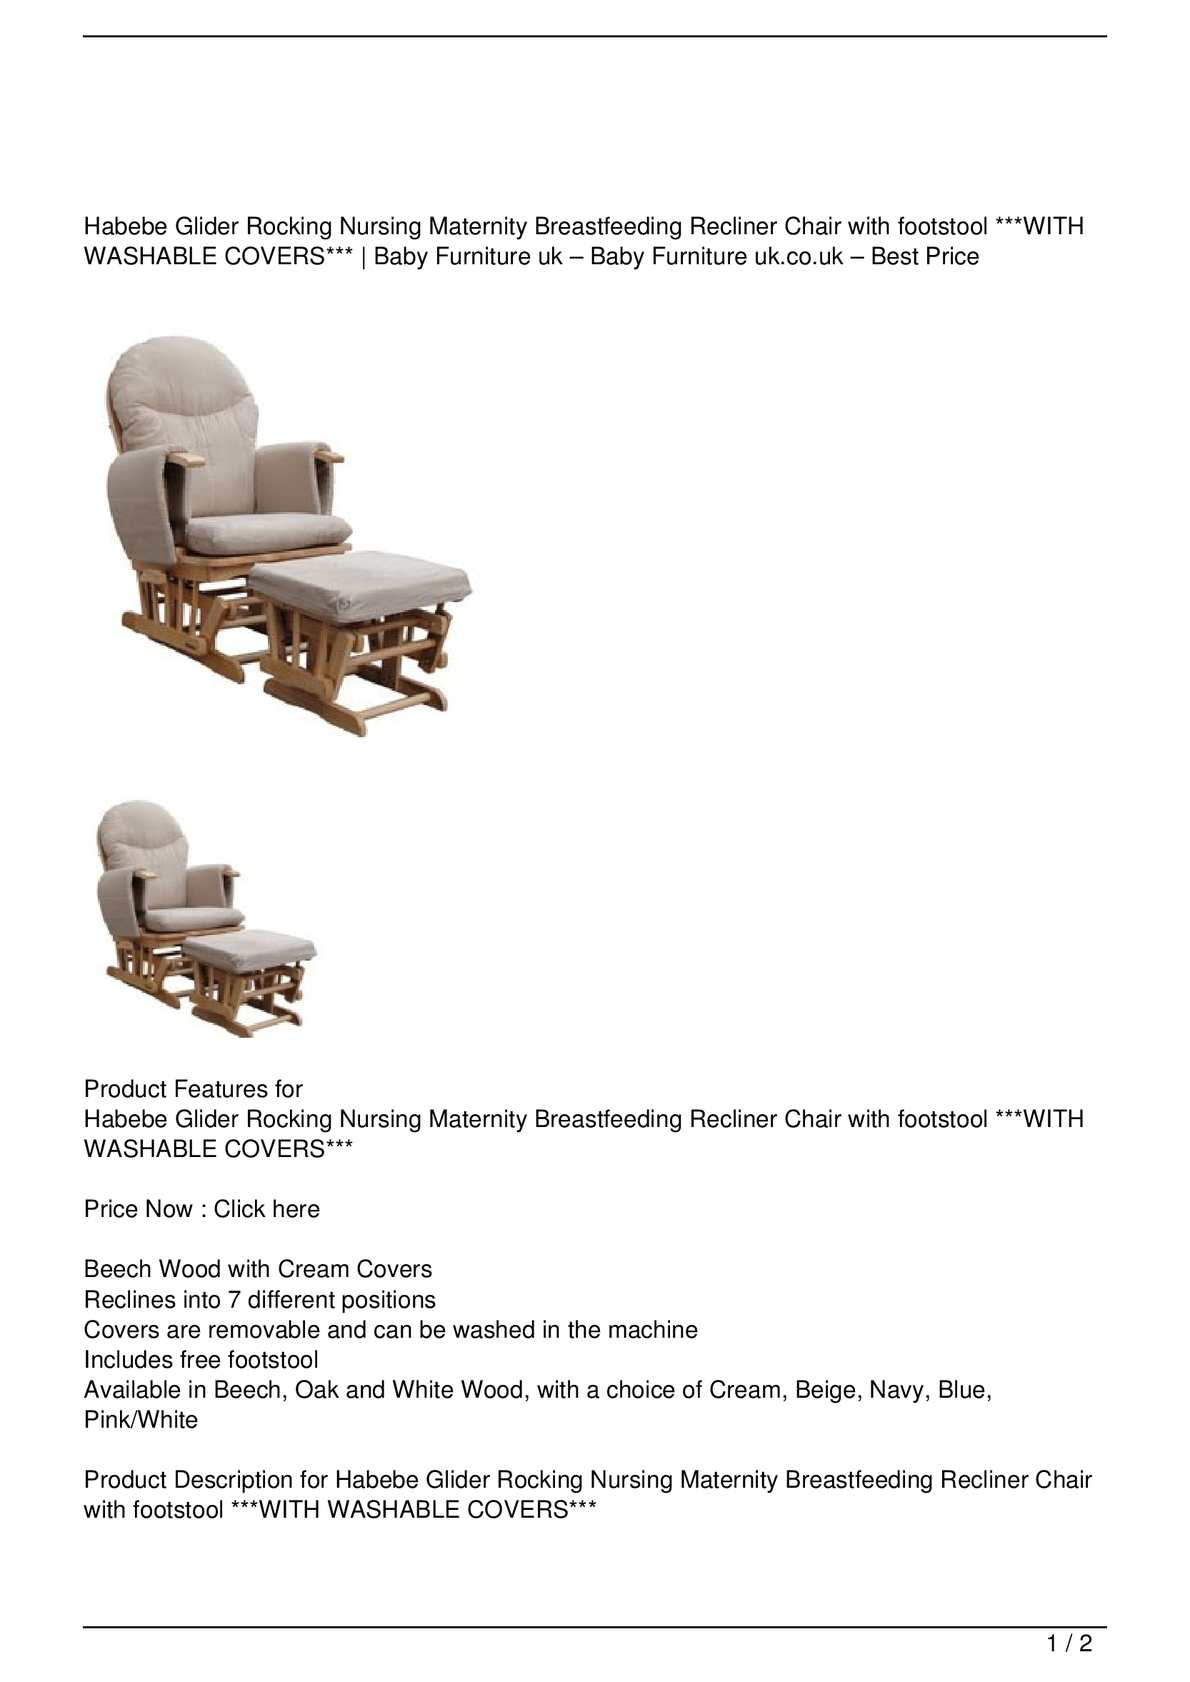 Calaméo - Habebe Glider Rocking Nursing Maternity Breastfeeding Recliner Chair with footstool ***WITH WASHABLE COVERS*** Get Rabate  sc 1 st  Calameo & Calaméo - Habebe Glider Rocking Nursing Maternity Breastfeeding ...